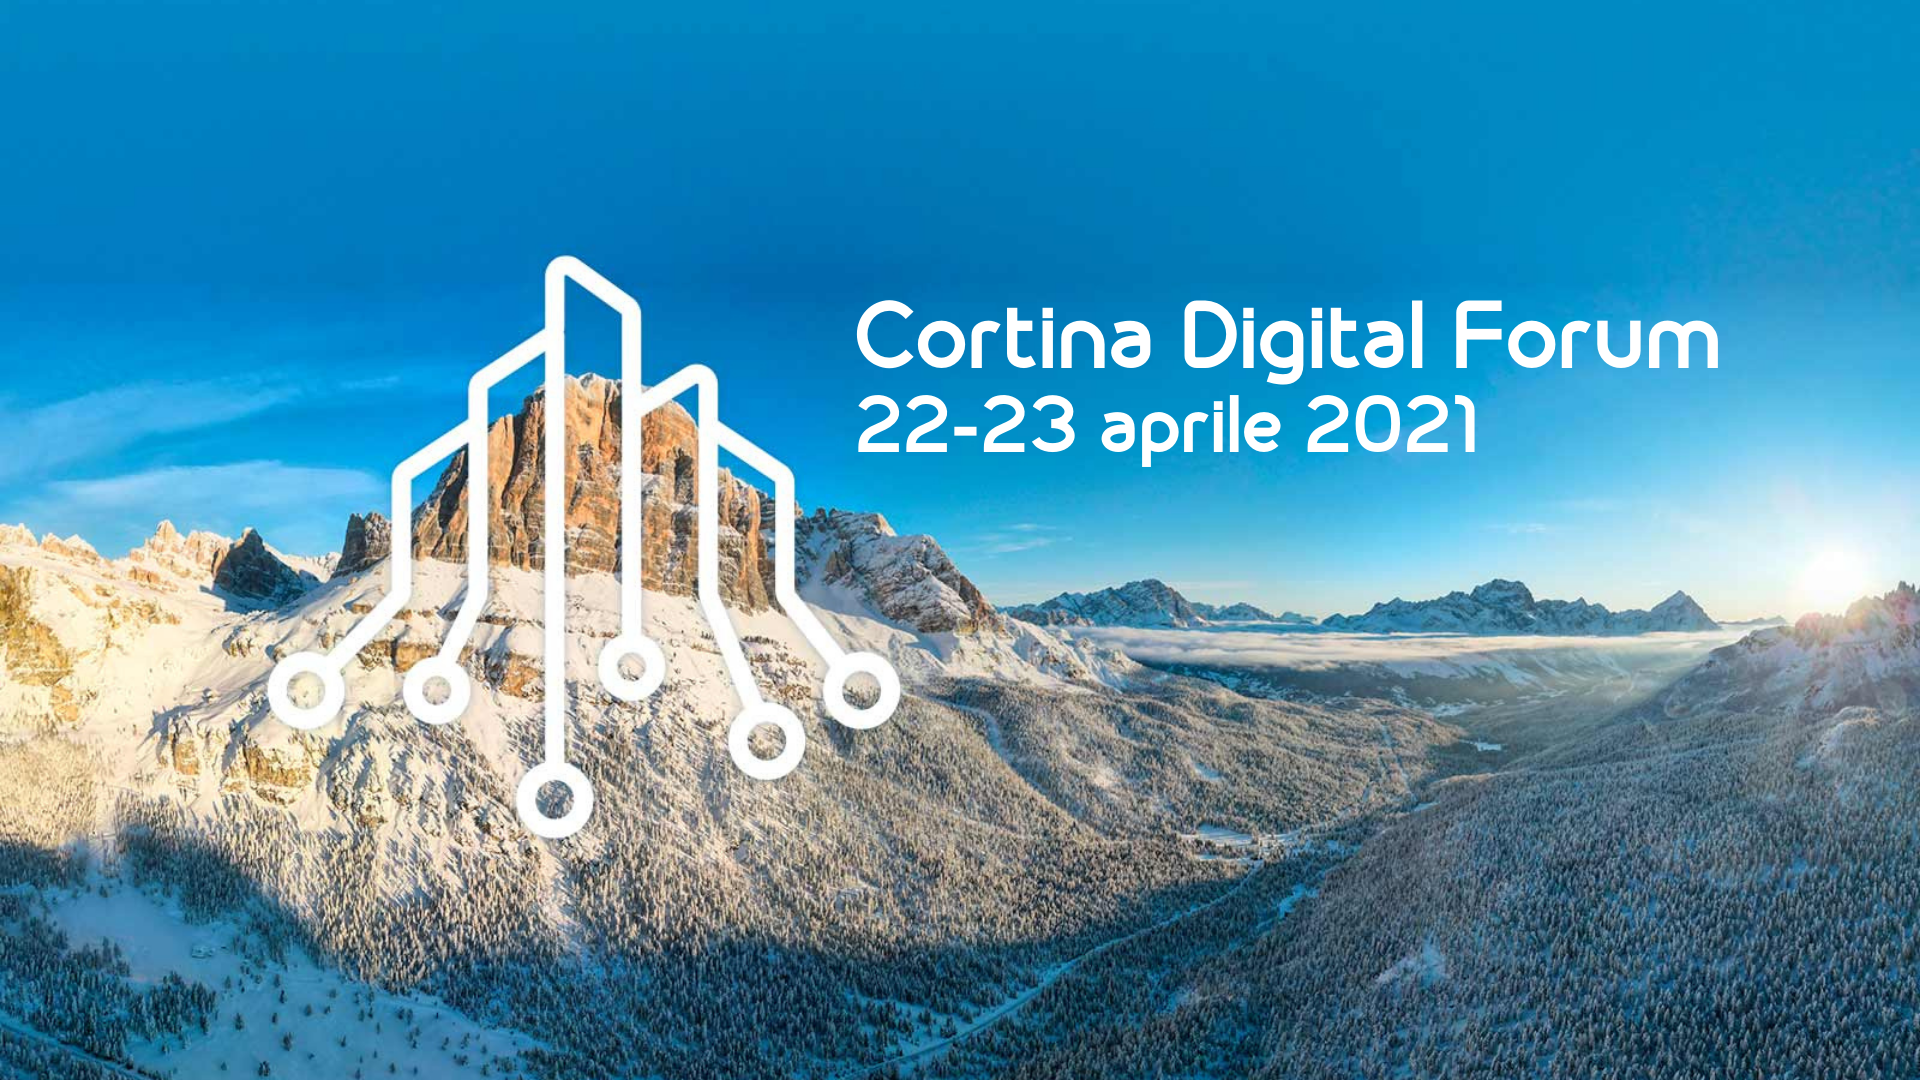 cortina-digital-forum